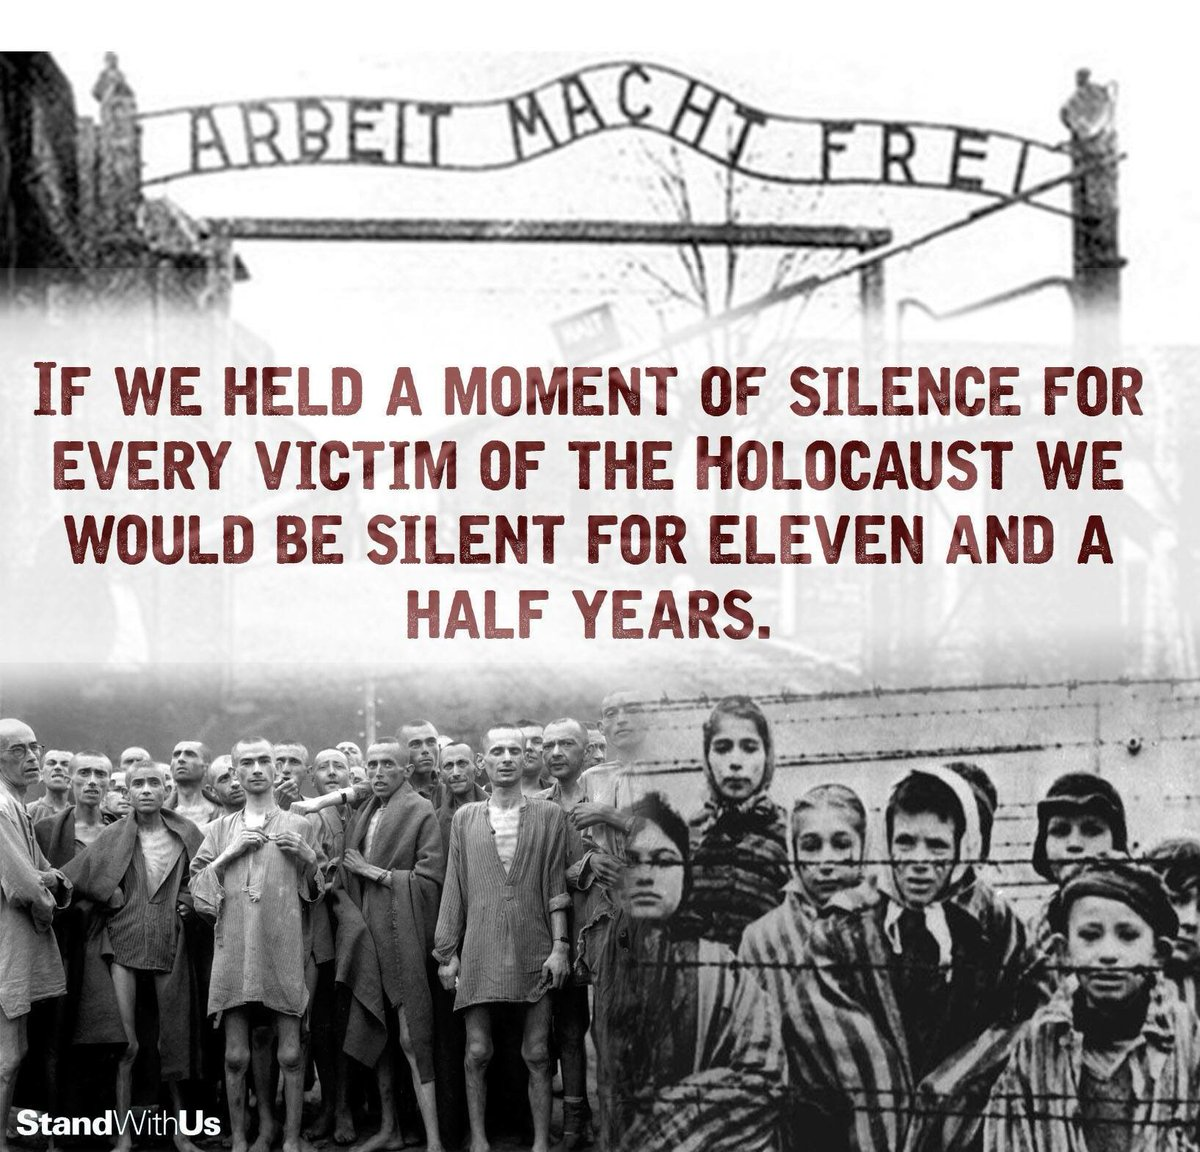 #HolocaustRemembranceDay WE REMEMBER THEM ALL Jews: 6,000,000 Soviets (including Jews): 10,000,000 Poles (non-Jewish): 1,800,000 Serbs: 312,000 Disabled: 250,000 Romani: 220,000 Homosexuals/Criminals 70,000+ #⃣ #HolocaustMemorialDay  🔗 Source: https://www.jewishvirtuallibrary.org/documenting-numbers-of-victims-of-the-holocaust…